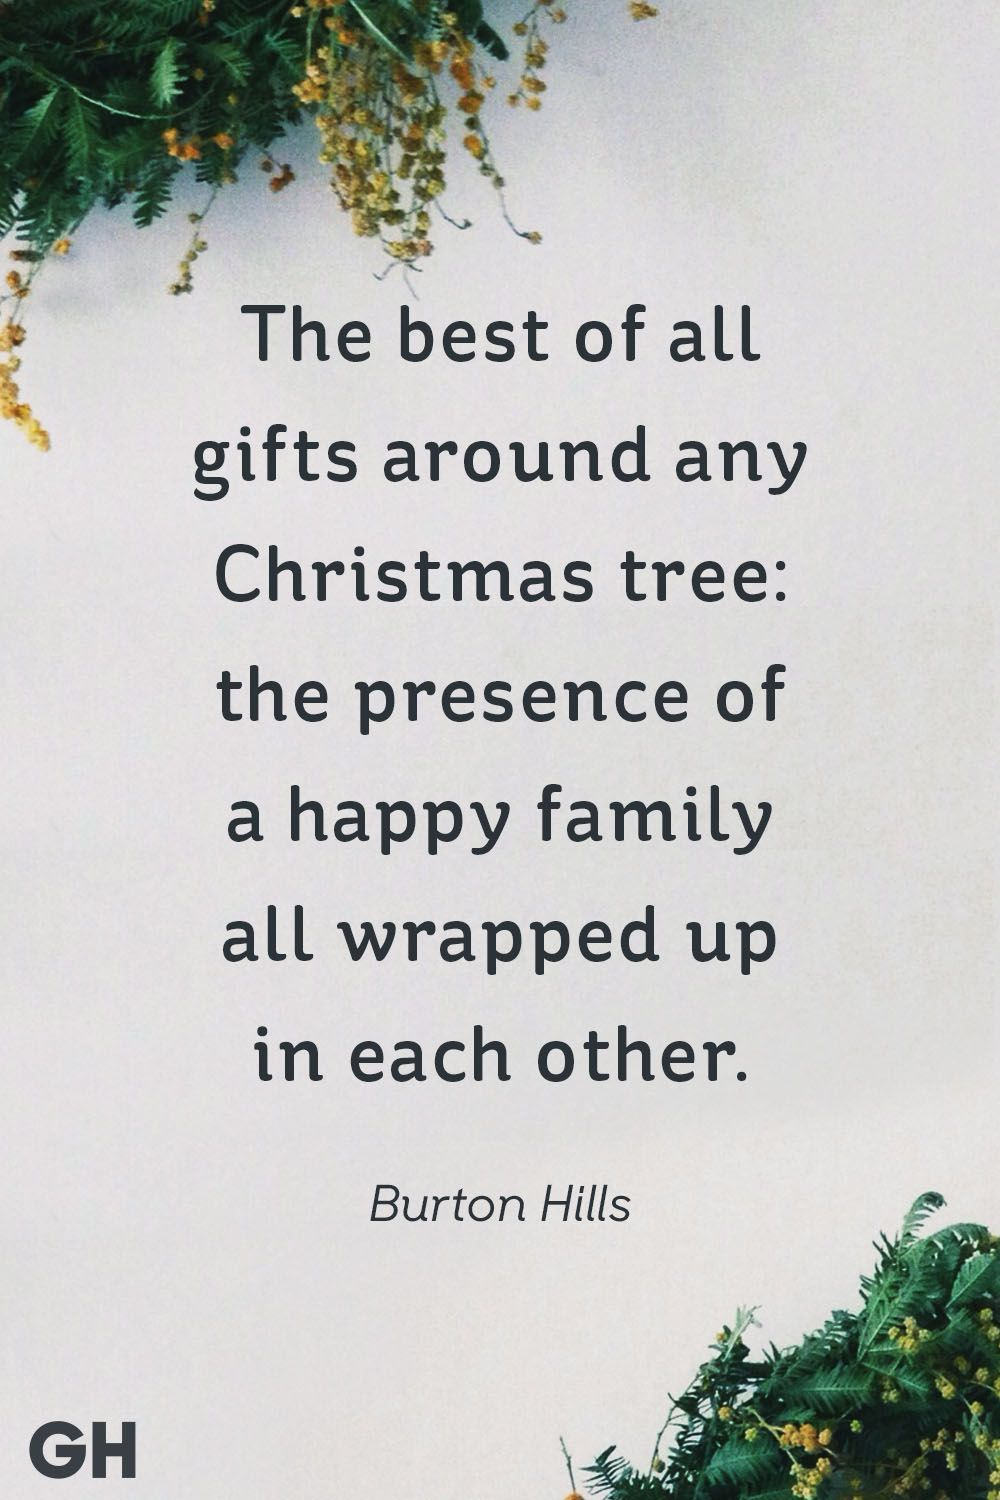 Christmas Quotes About Family 38 Best Christmas Quotes of All Time   Festive Holiday Sayings Christmas Quotes About Family